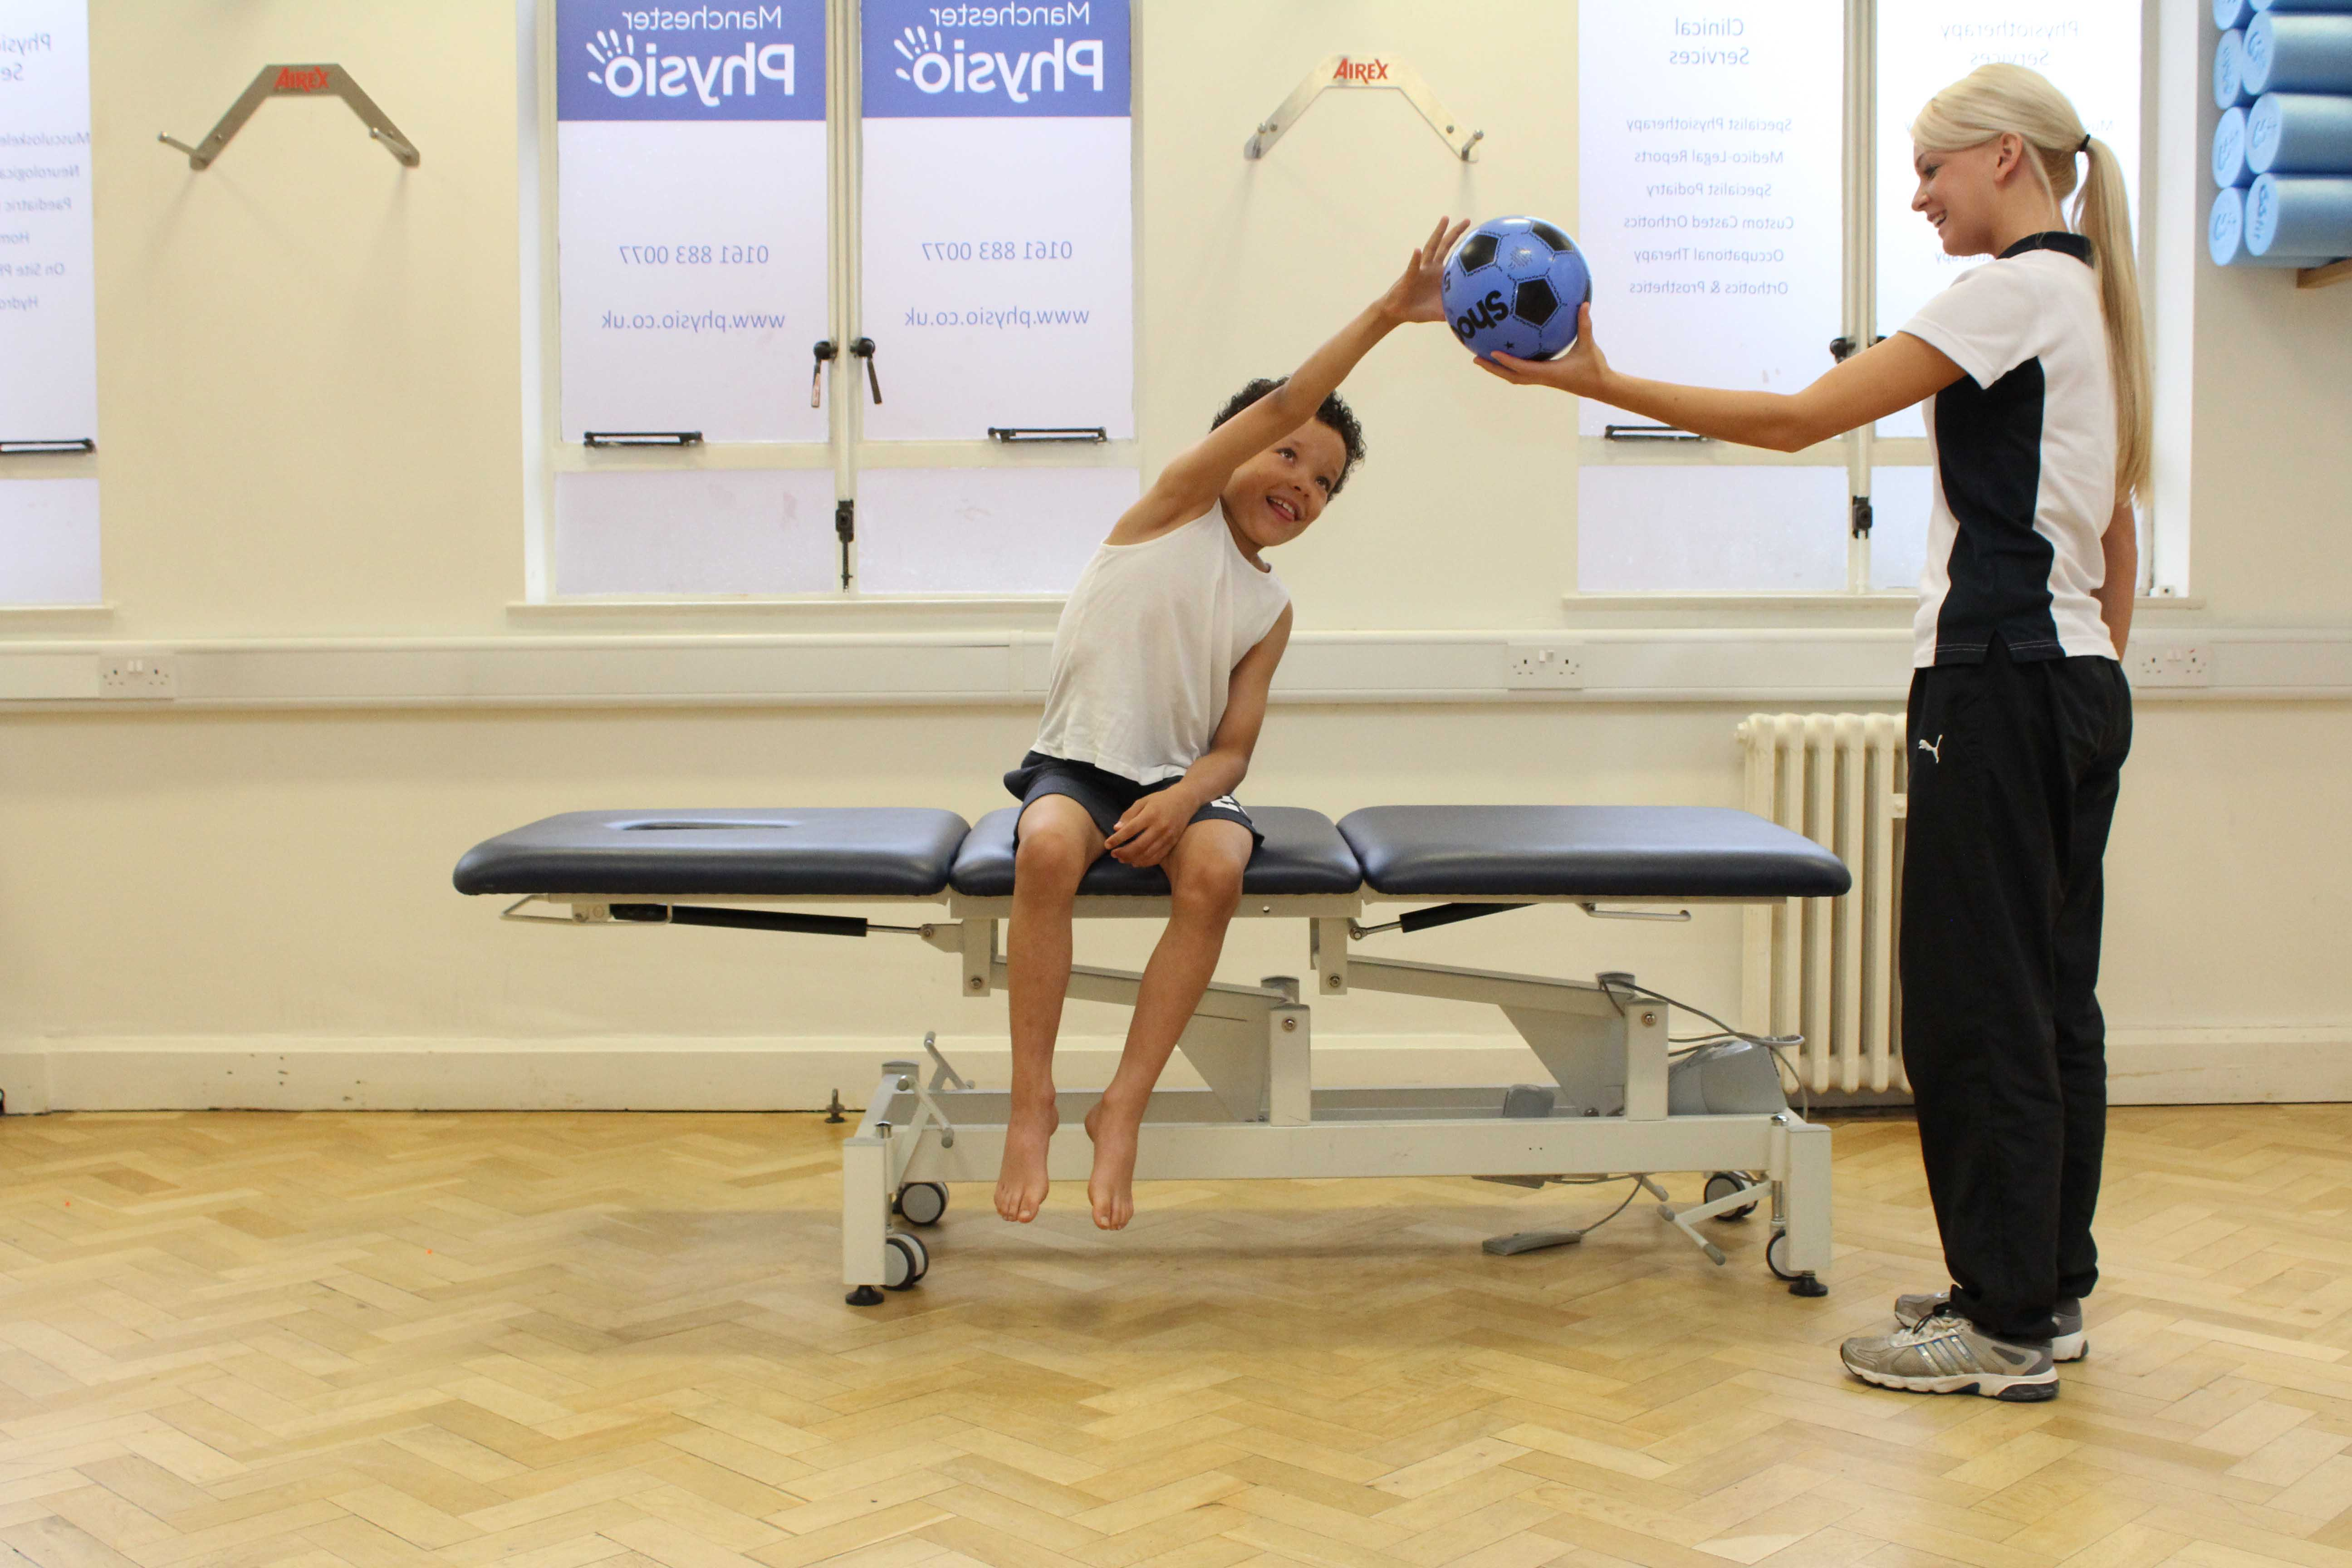 Proprioception and co-ordination exercises assisted by specialist paediatric physiotherapist